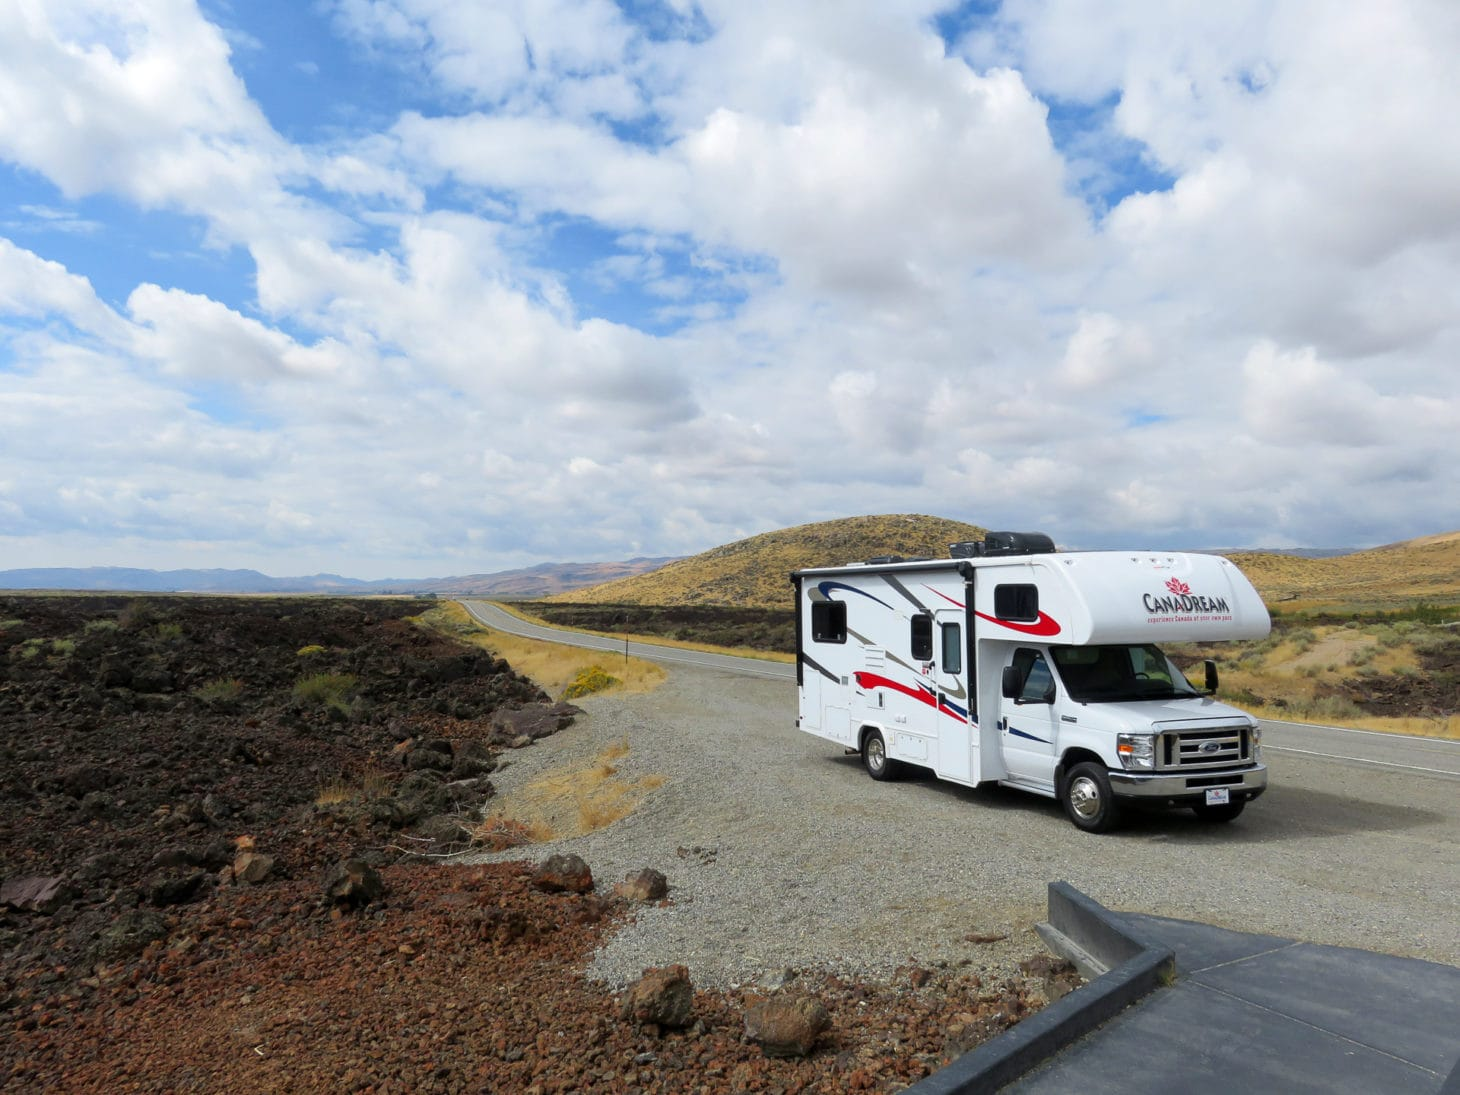 RV pulled over at scenic spot in Western Canada